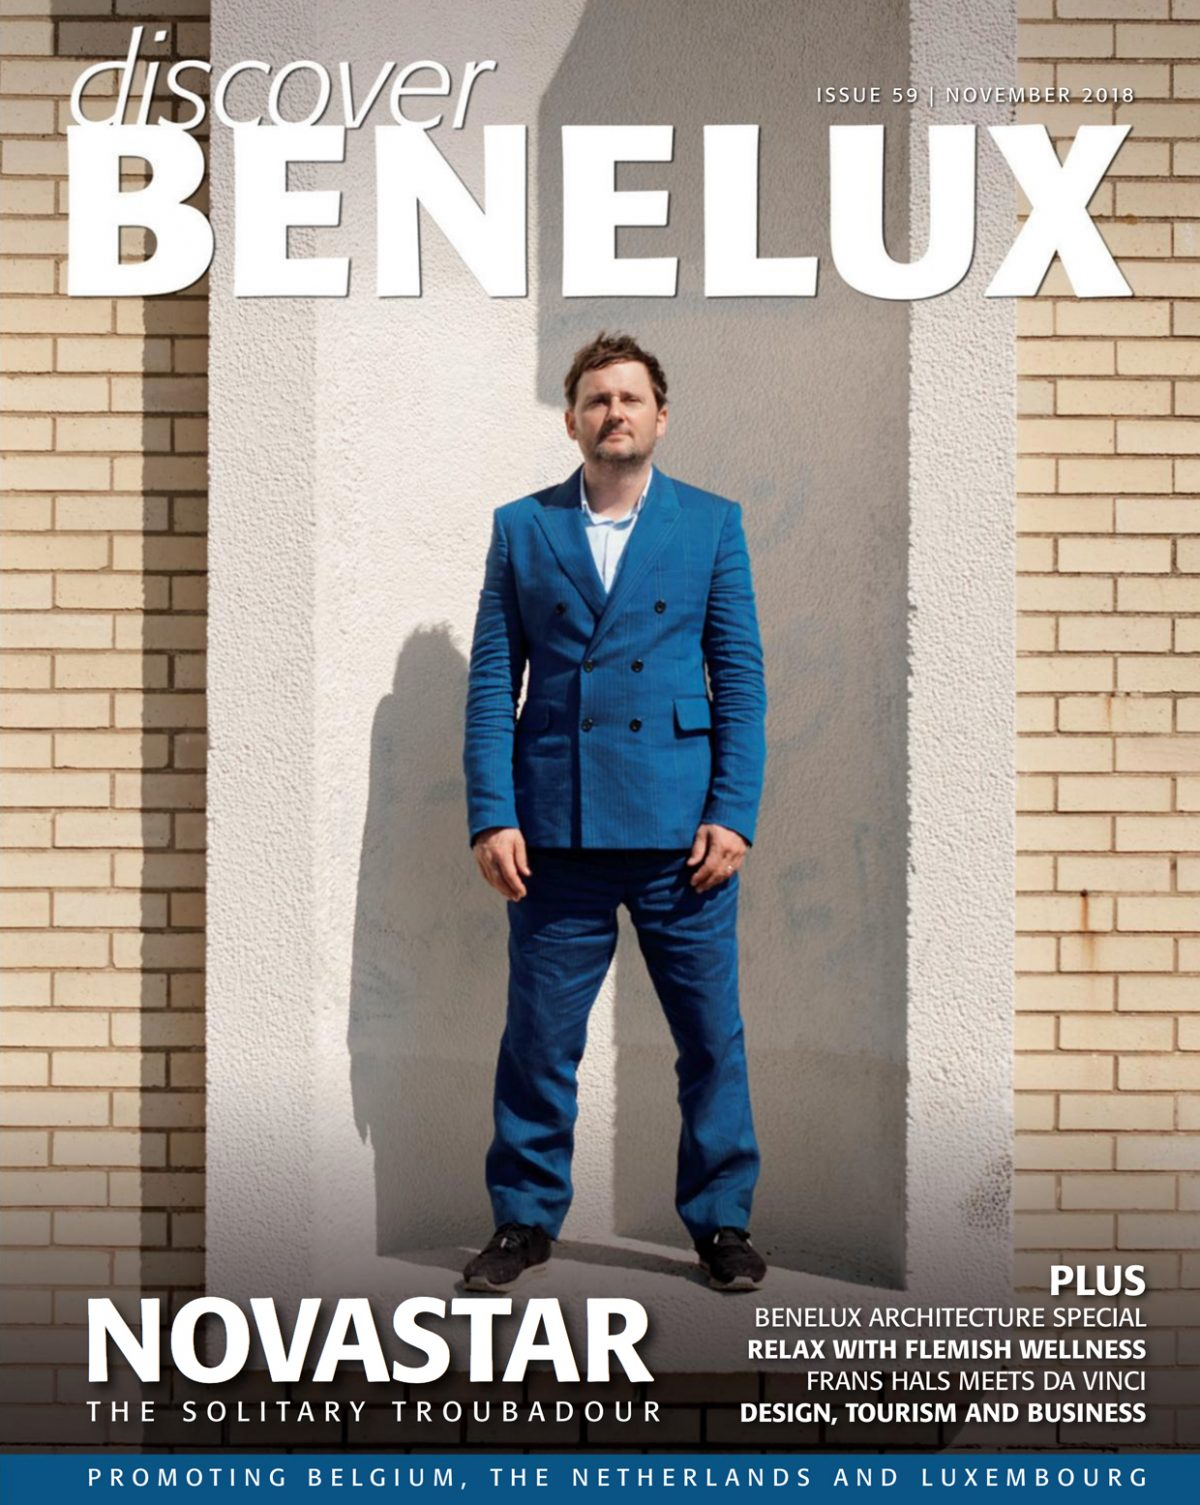 discover-benelux-cover-issue-59